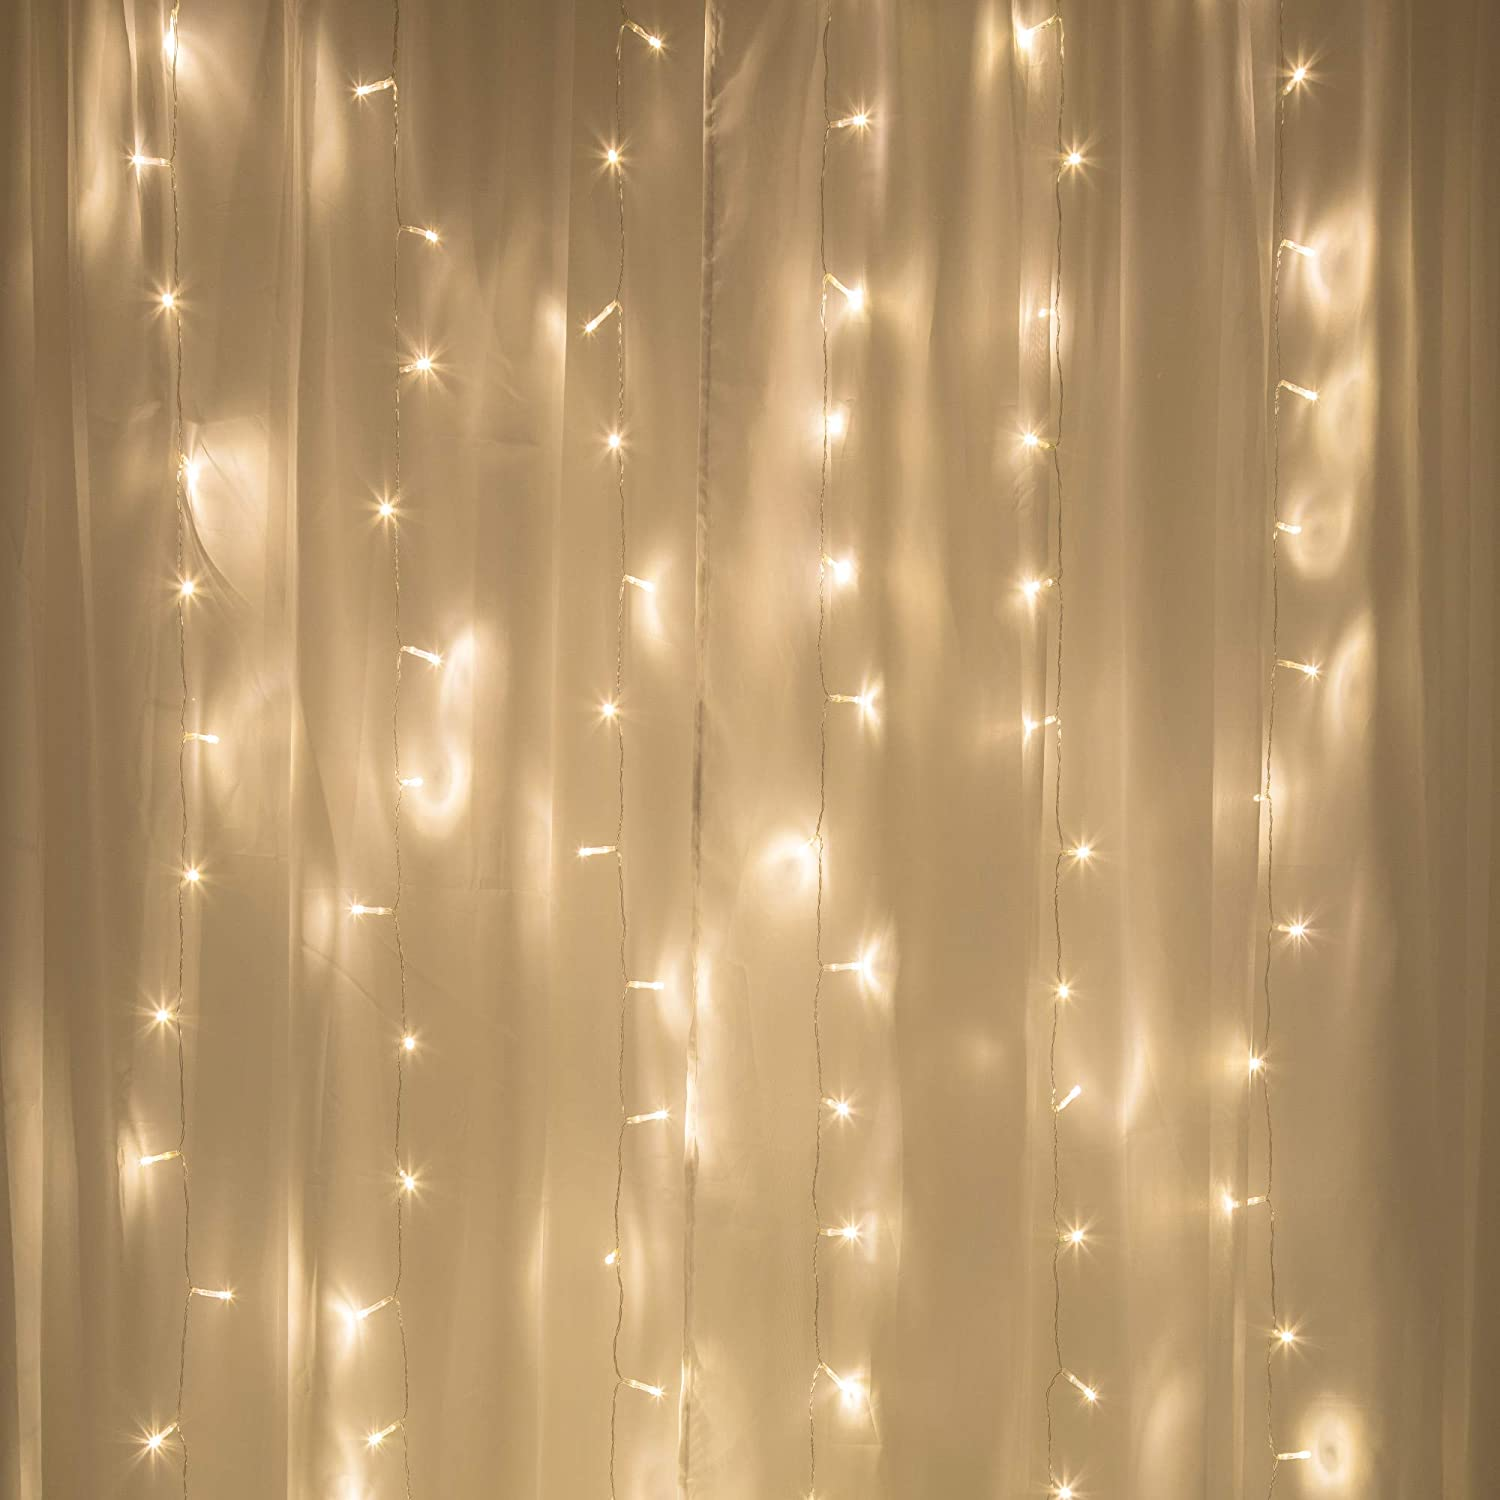 Merkury Innovations Curtain Lights, Cascading Battery-Operated LED Lighted Backdrop Curtain for Bedroom, Wedding, Decoration, or Christmas (Warm White)